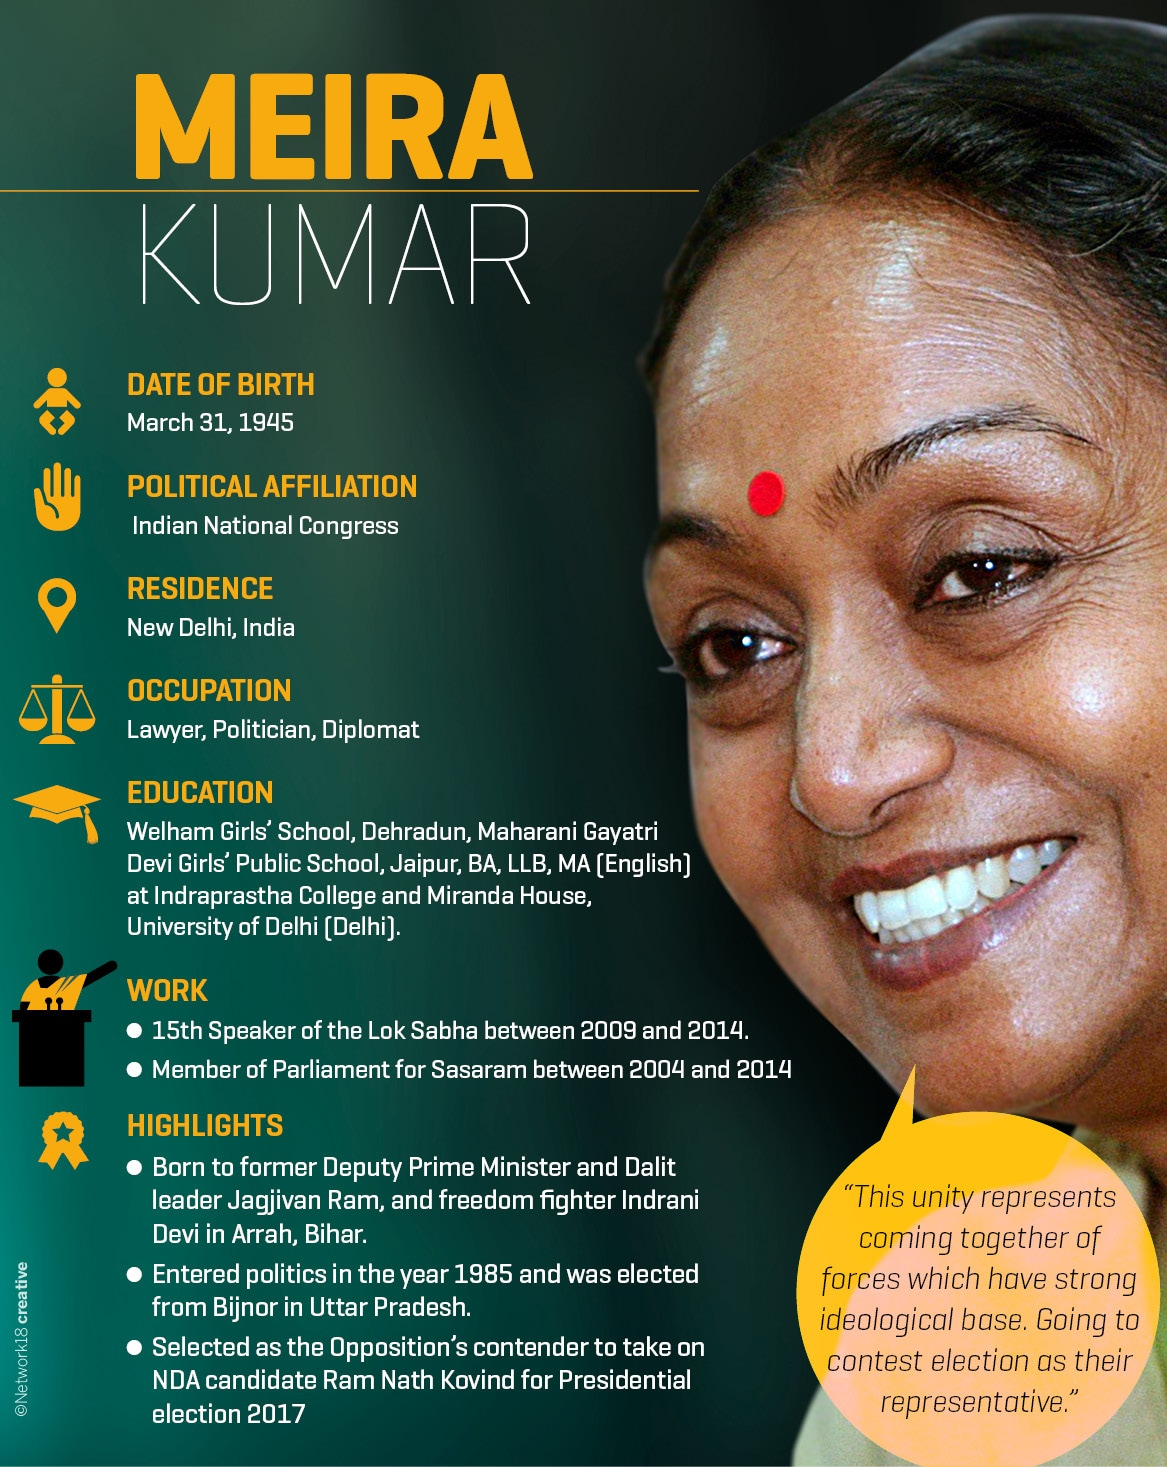 Meira Kumar who is